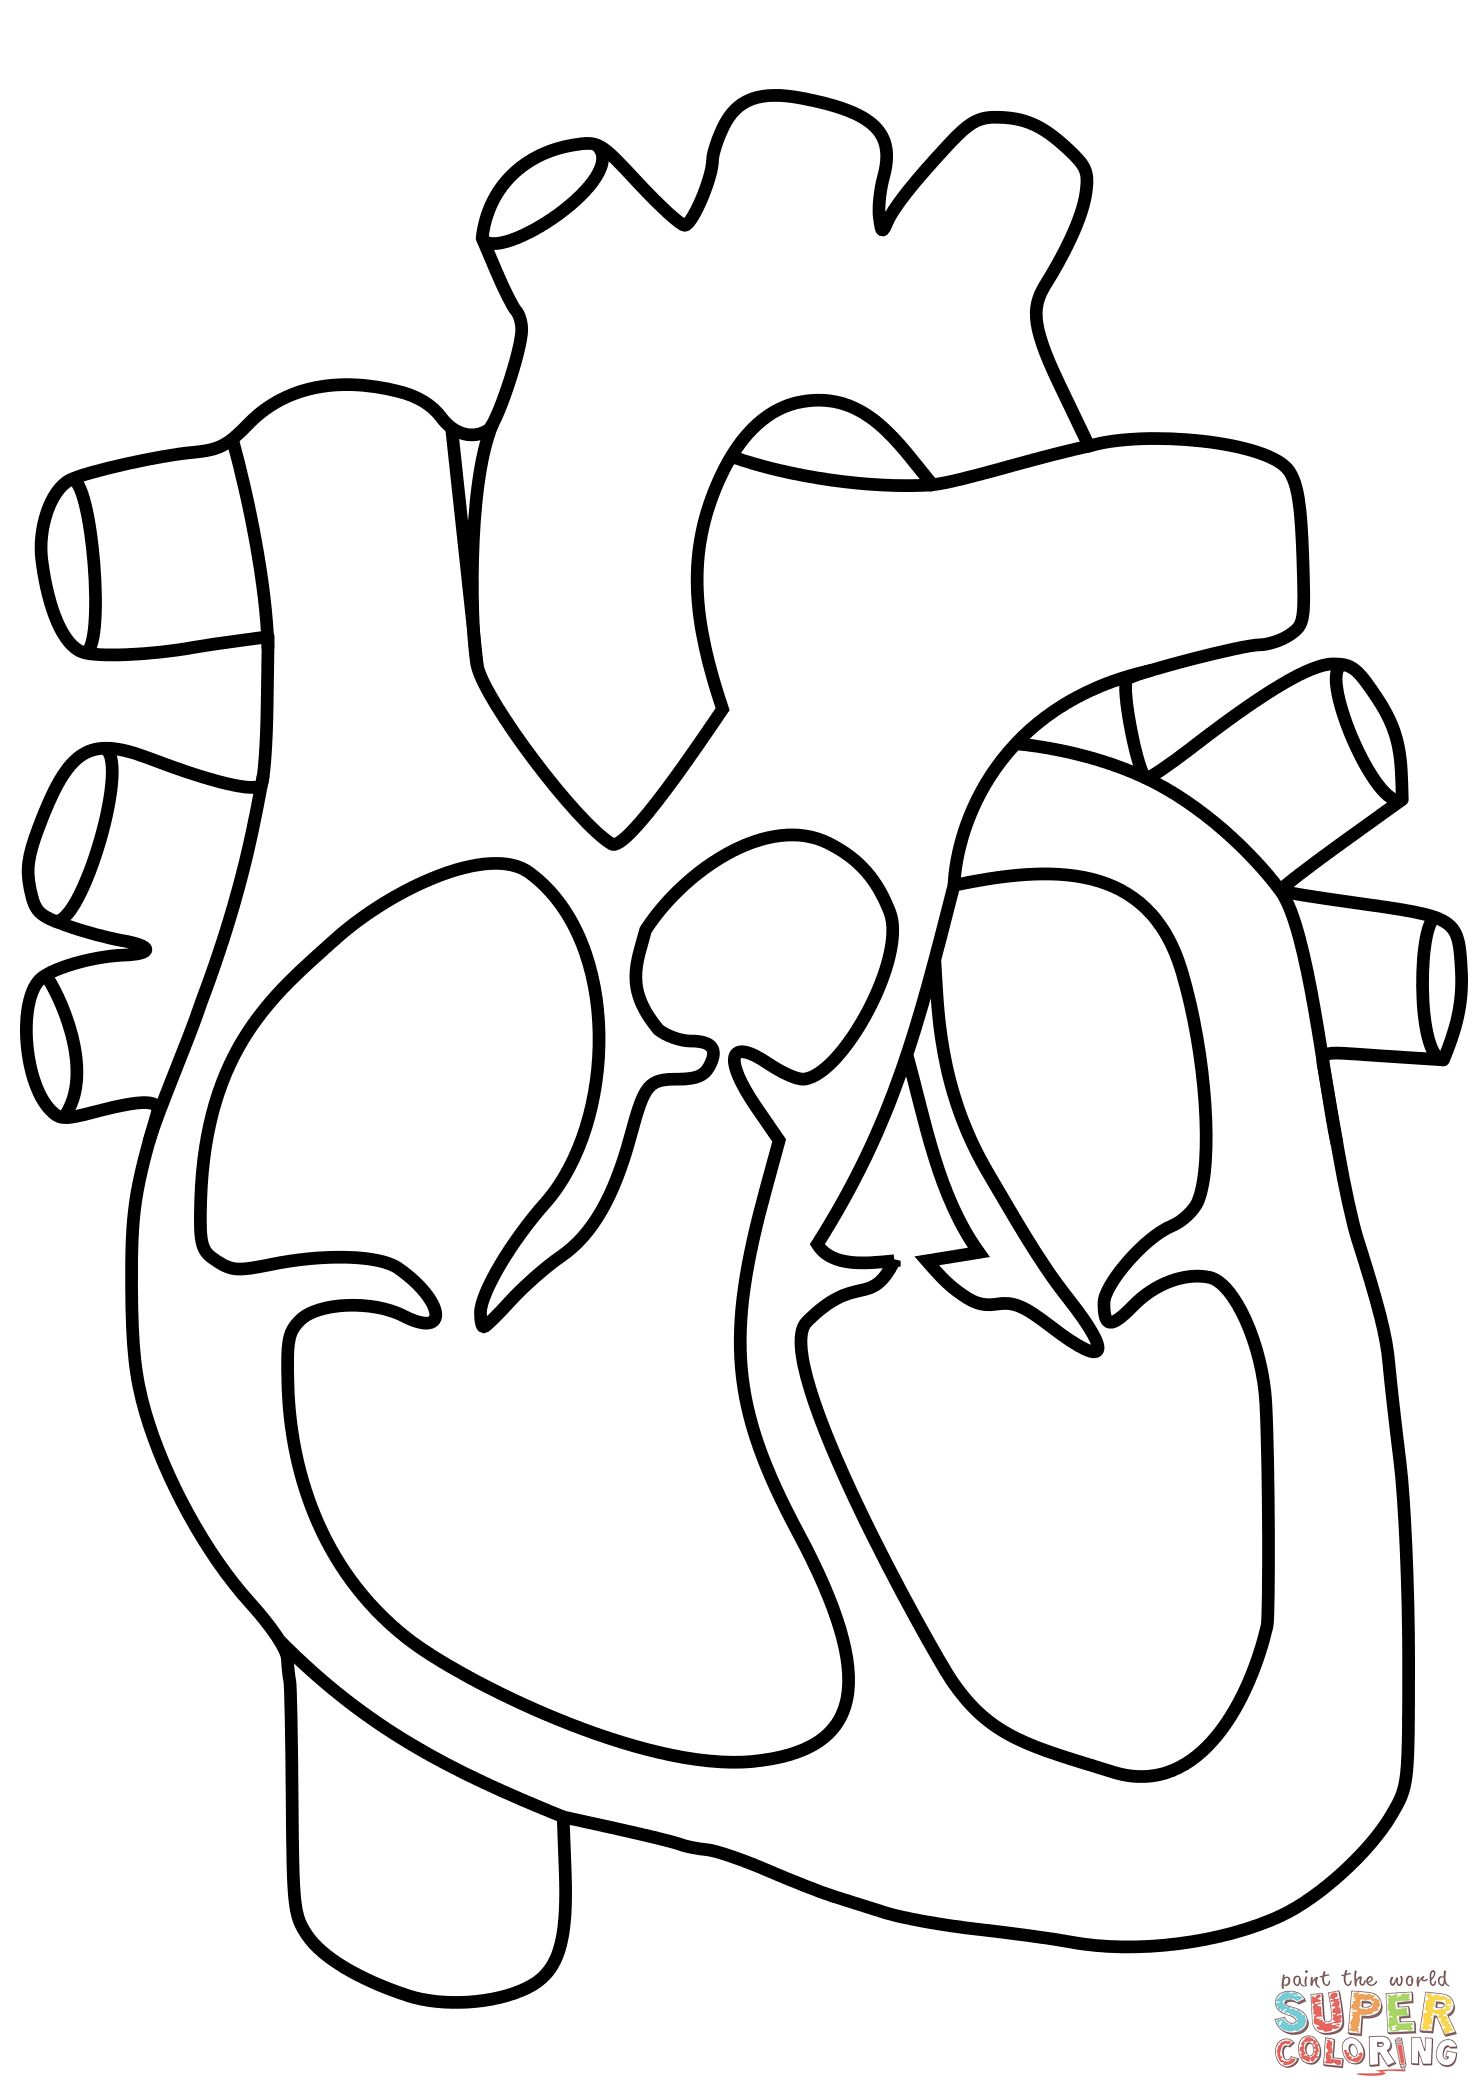 human heart coloring pages human heart coloring page human hearthuman heart coloring pages human heart coloring page human heart coloring page free printable coloring pages